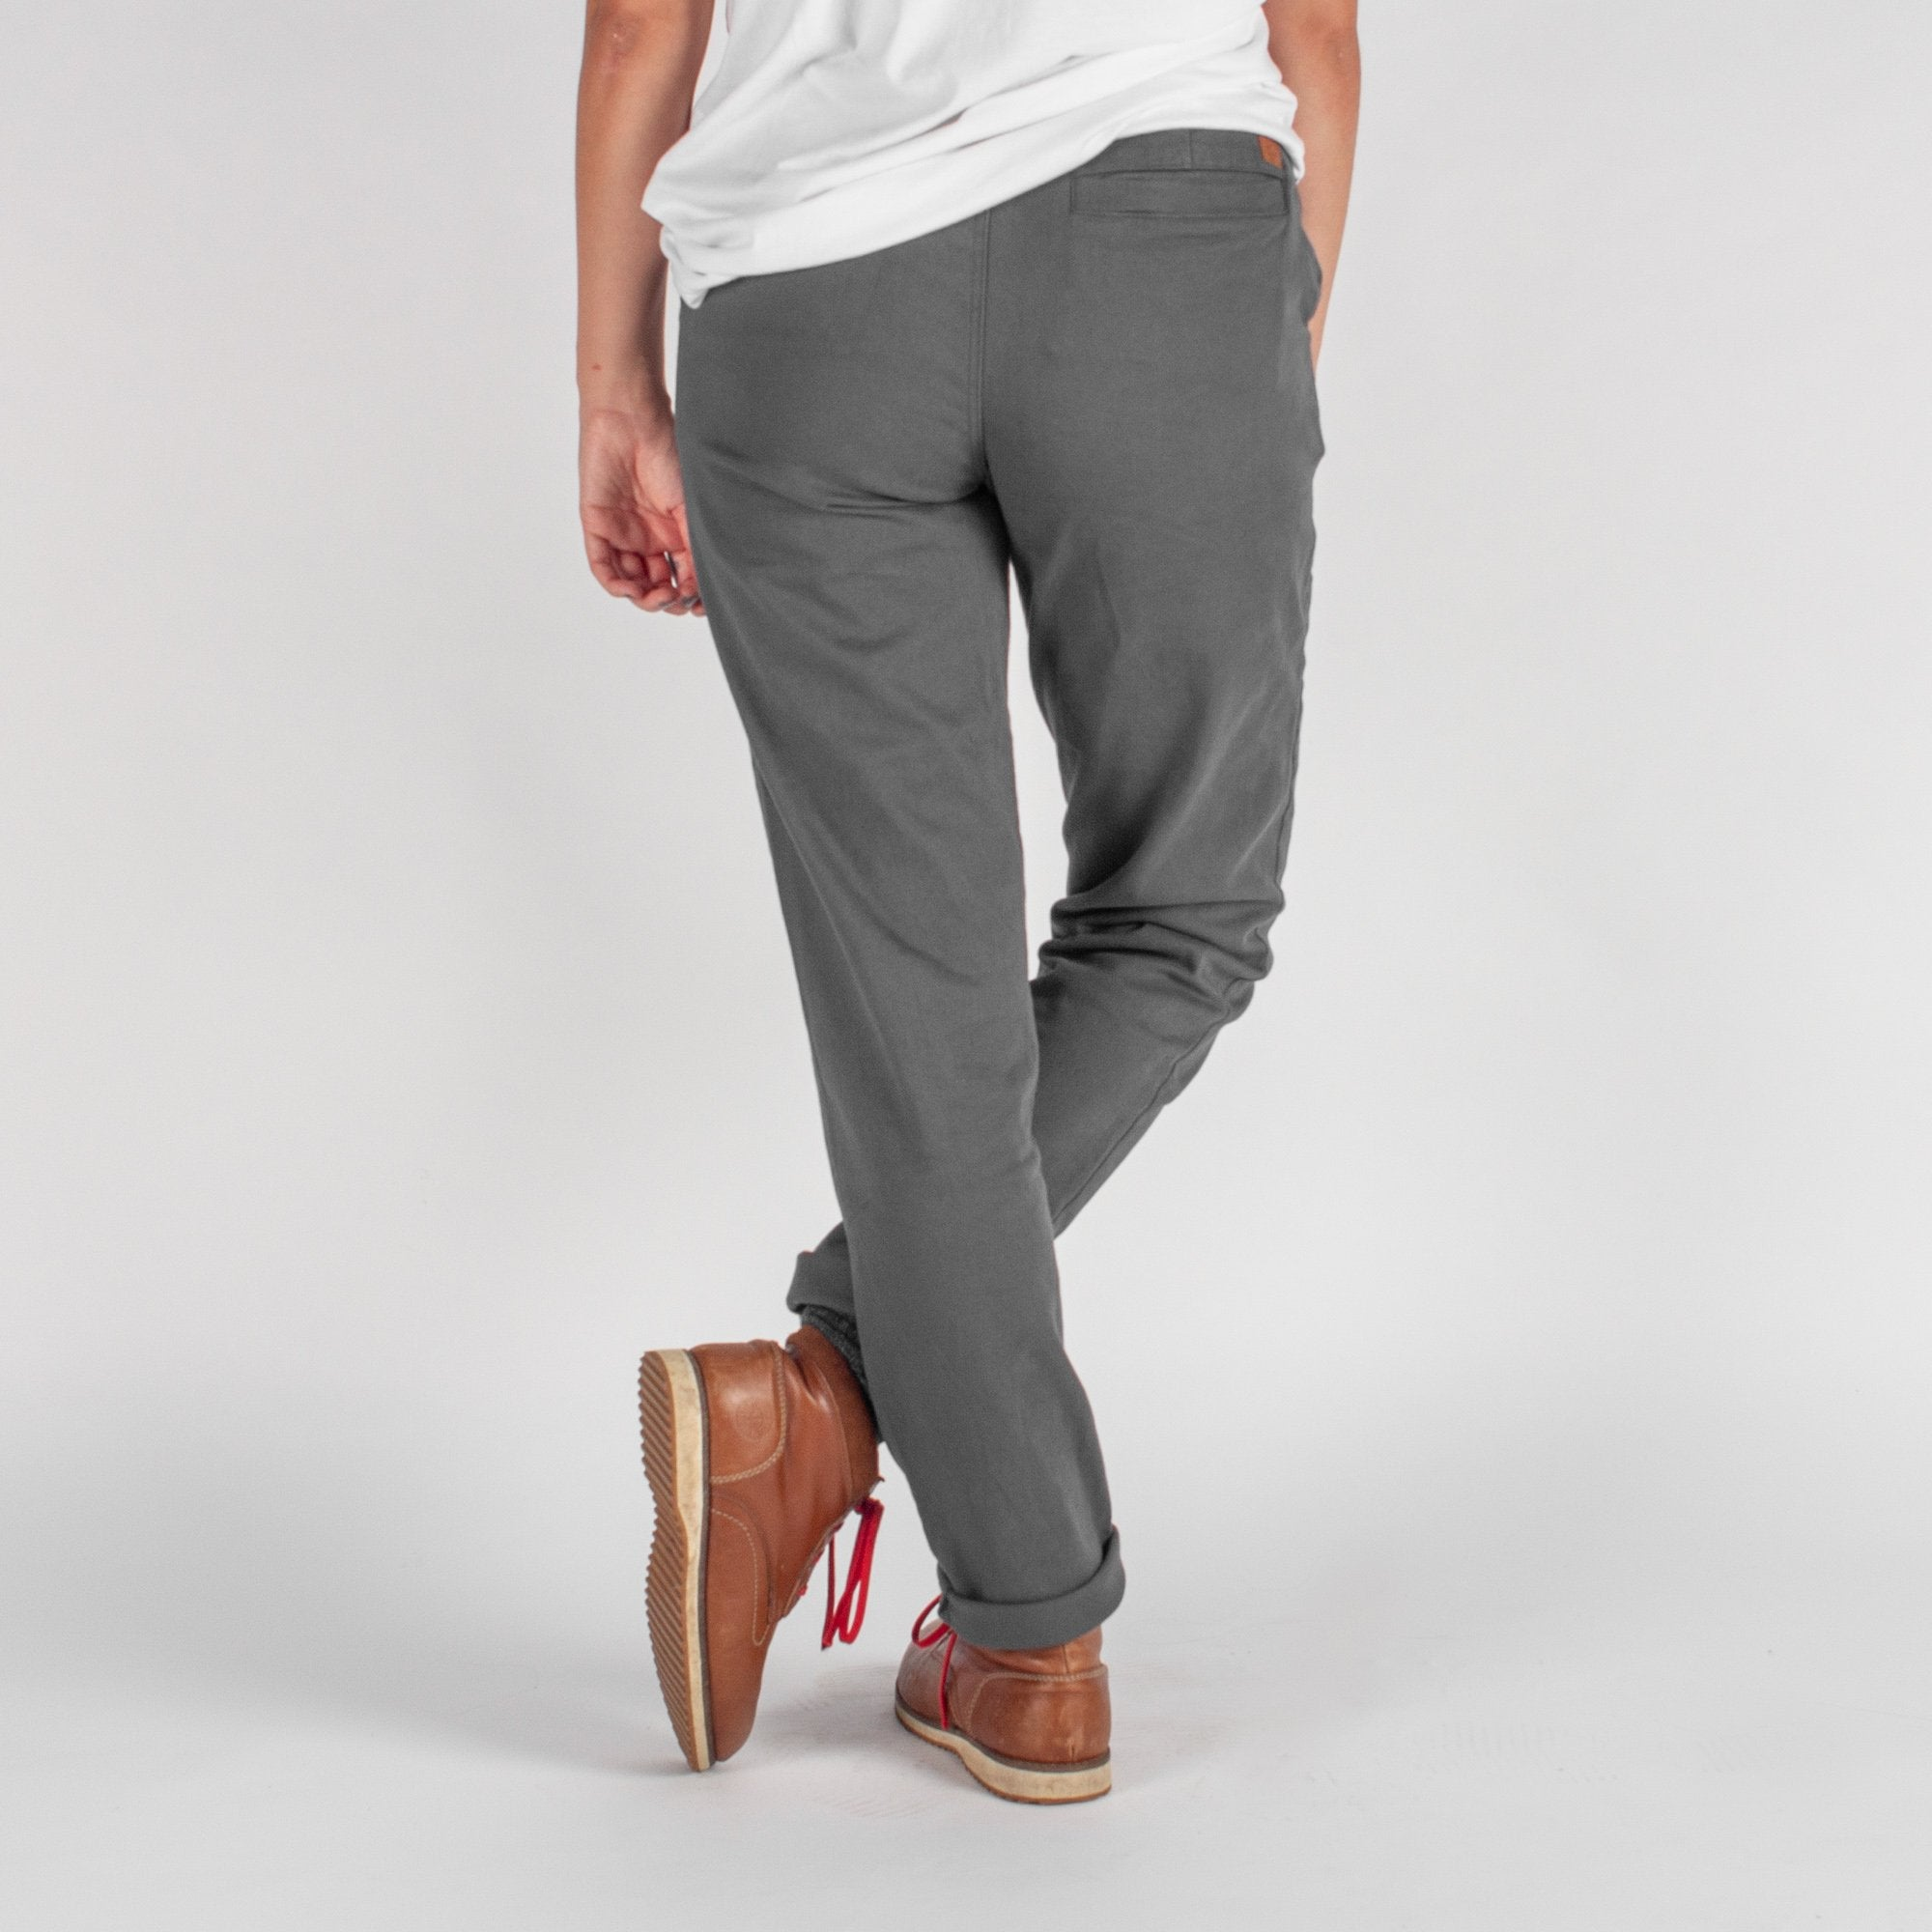 Offtrail Trousers - Grey image 4